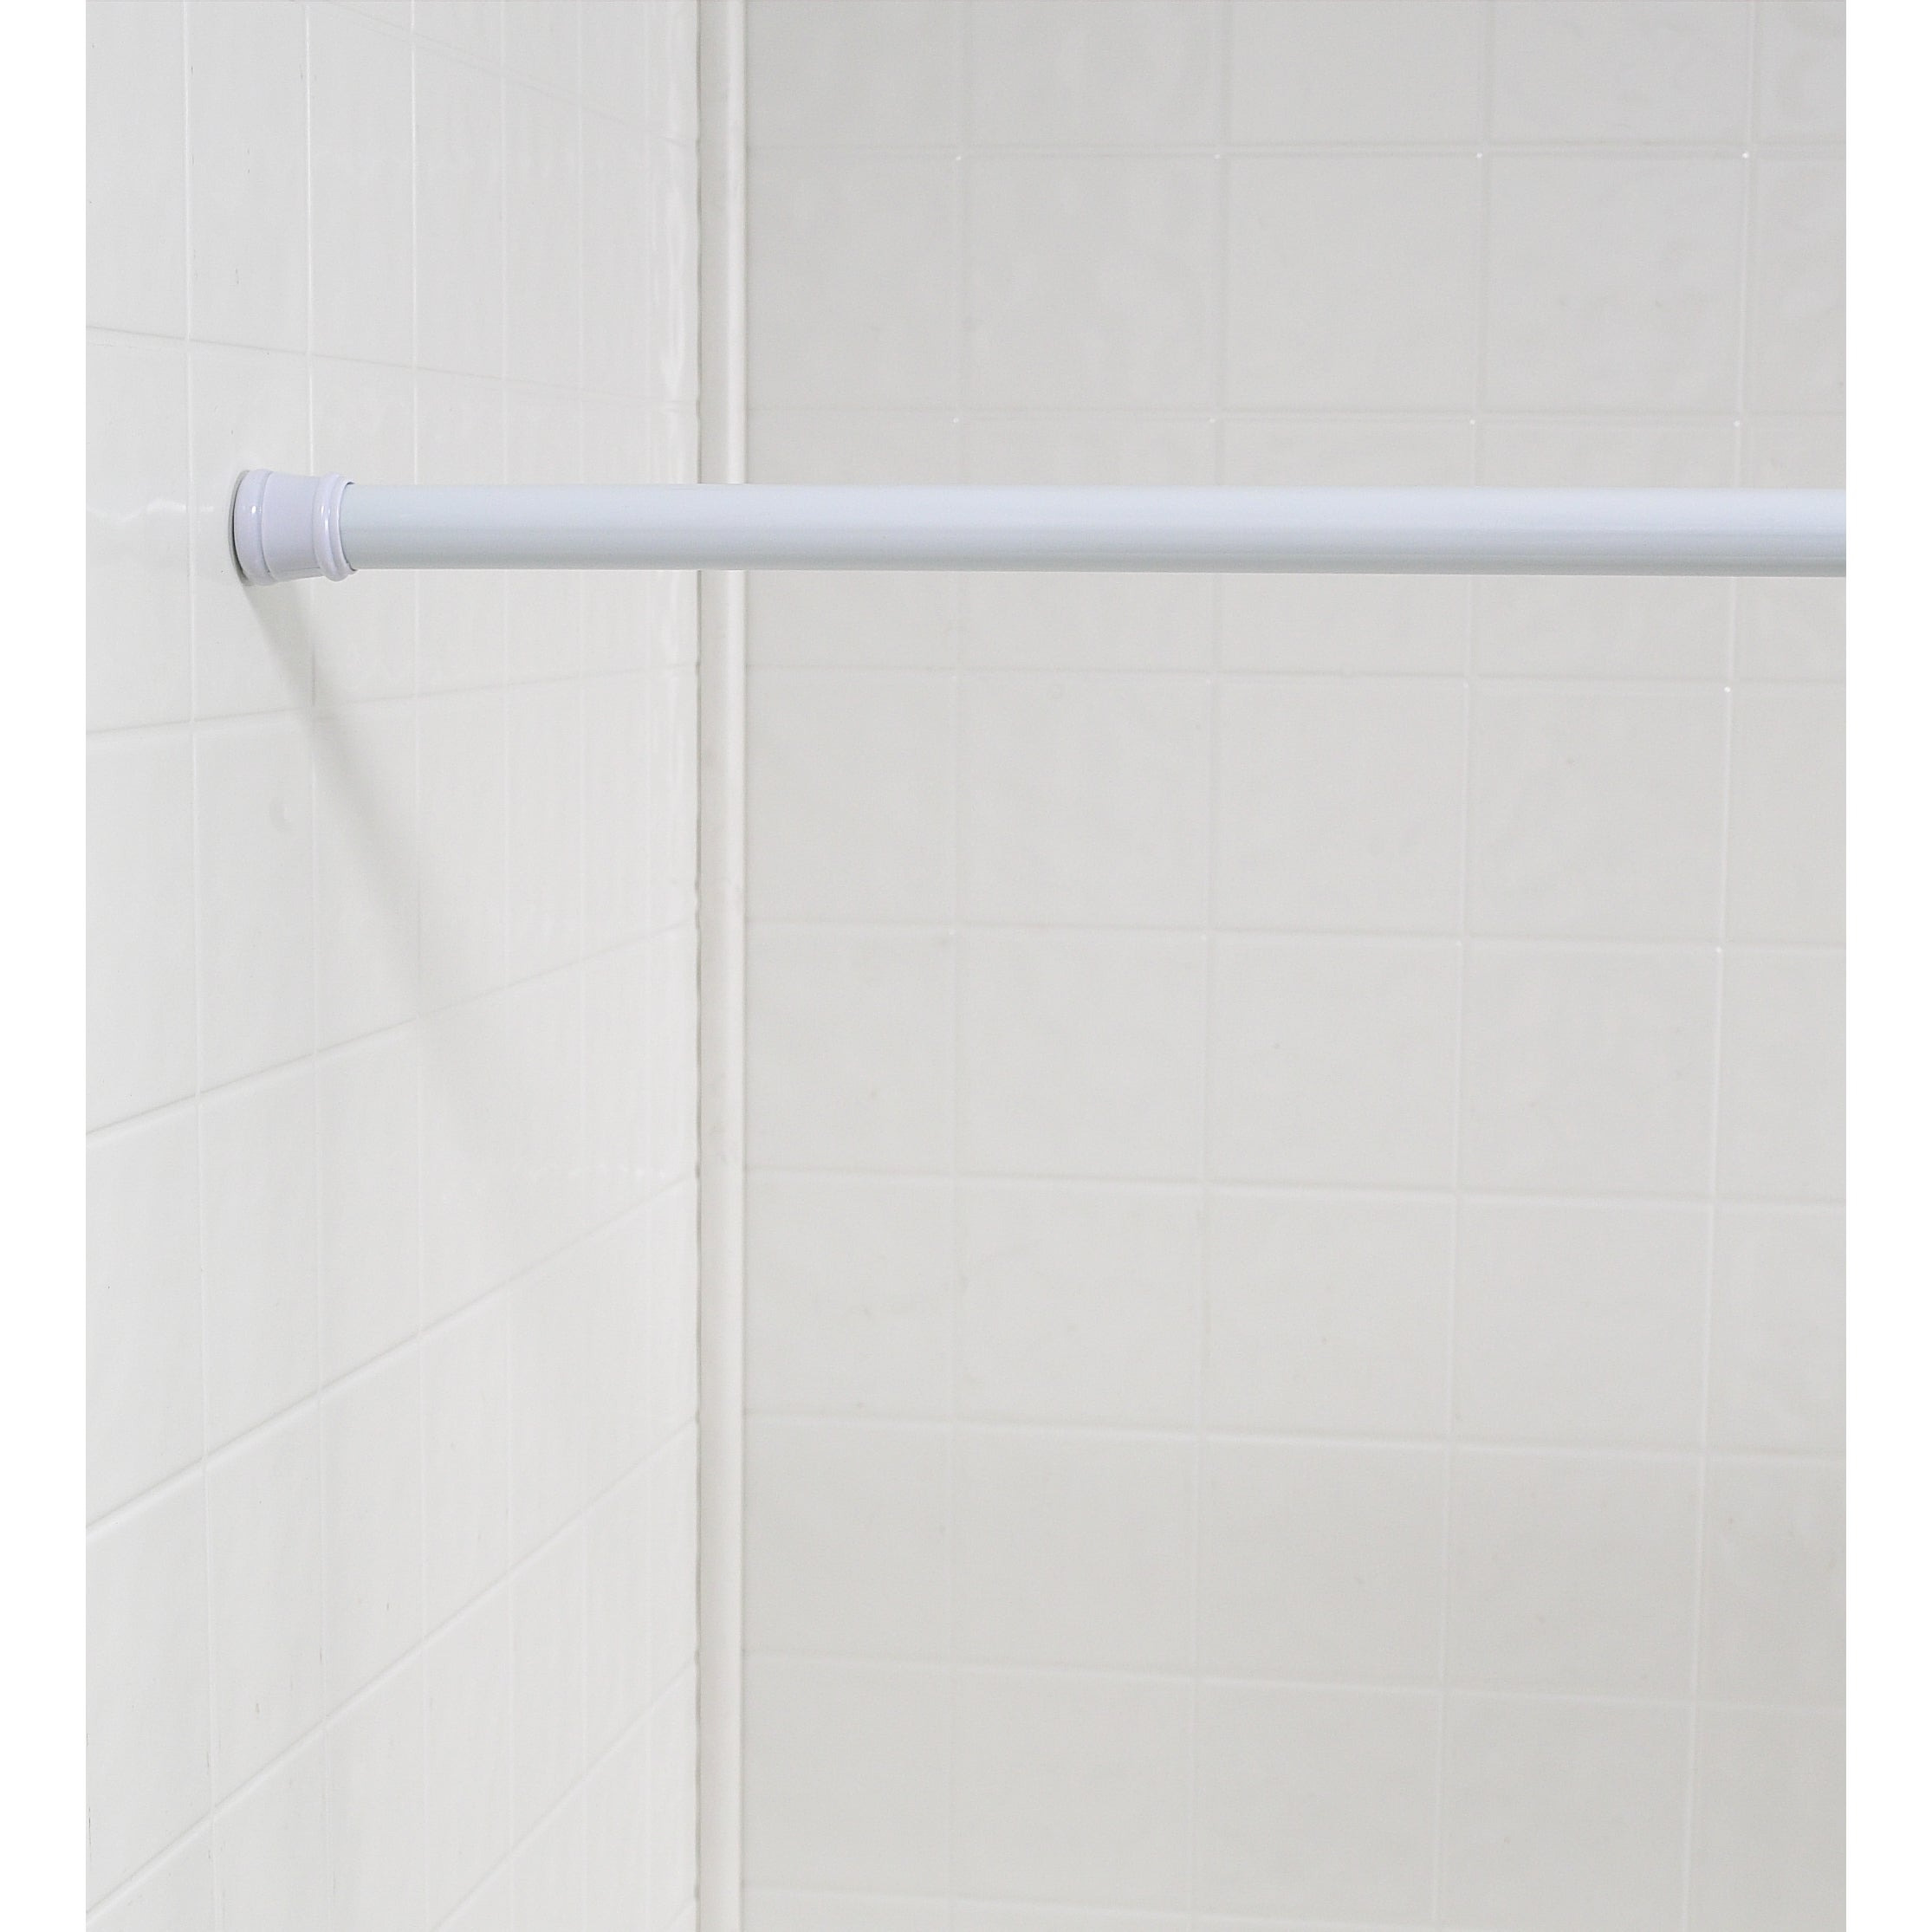 Standard Size Shower Curtain Tension Rod - Free Shipping On Orders ...